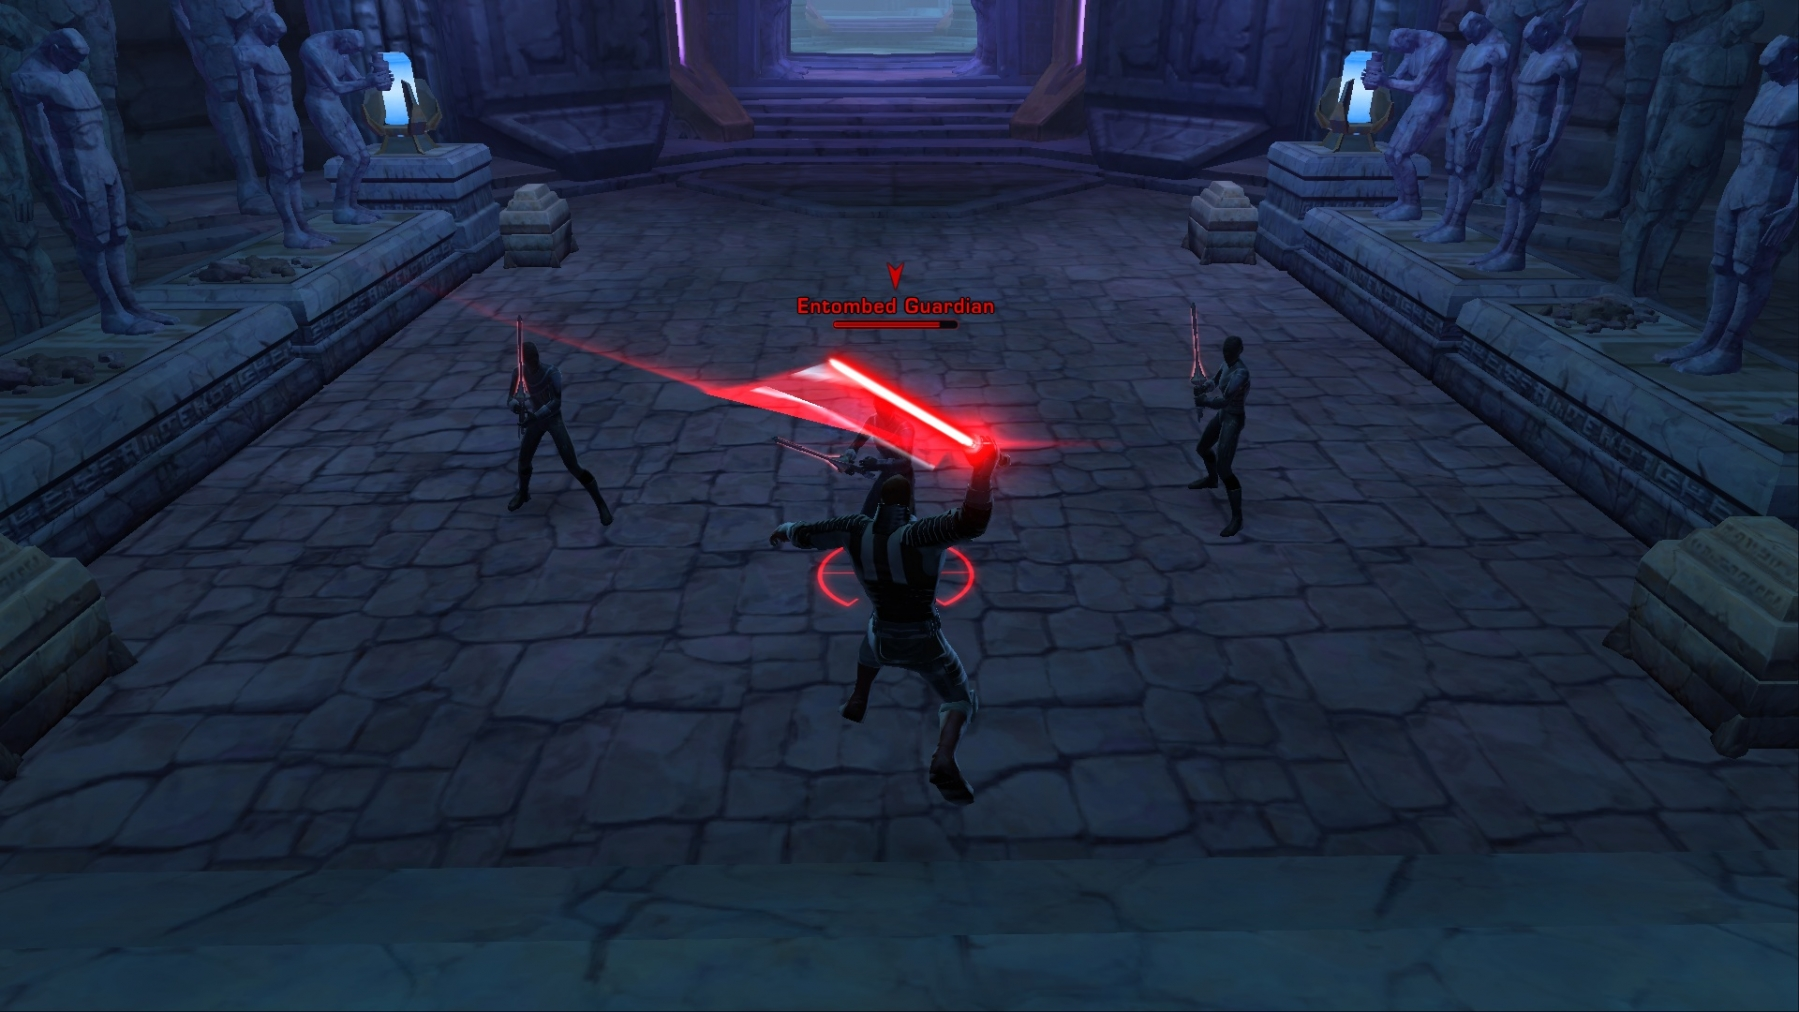 ddmsrealm-star-wars-korriban-entombed-guardian-fight